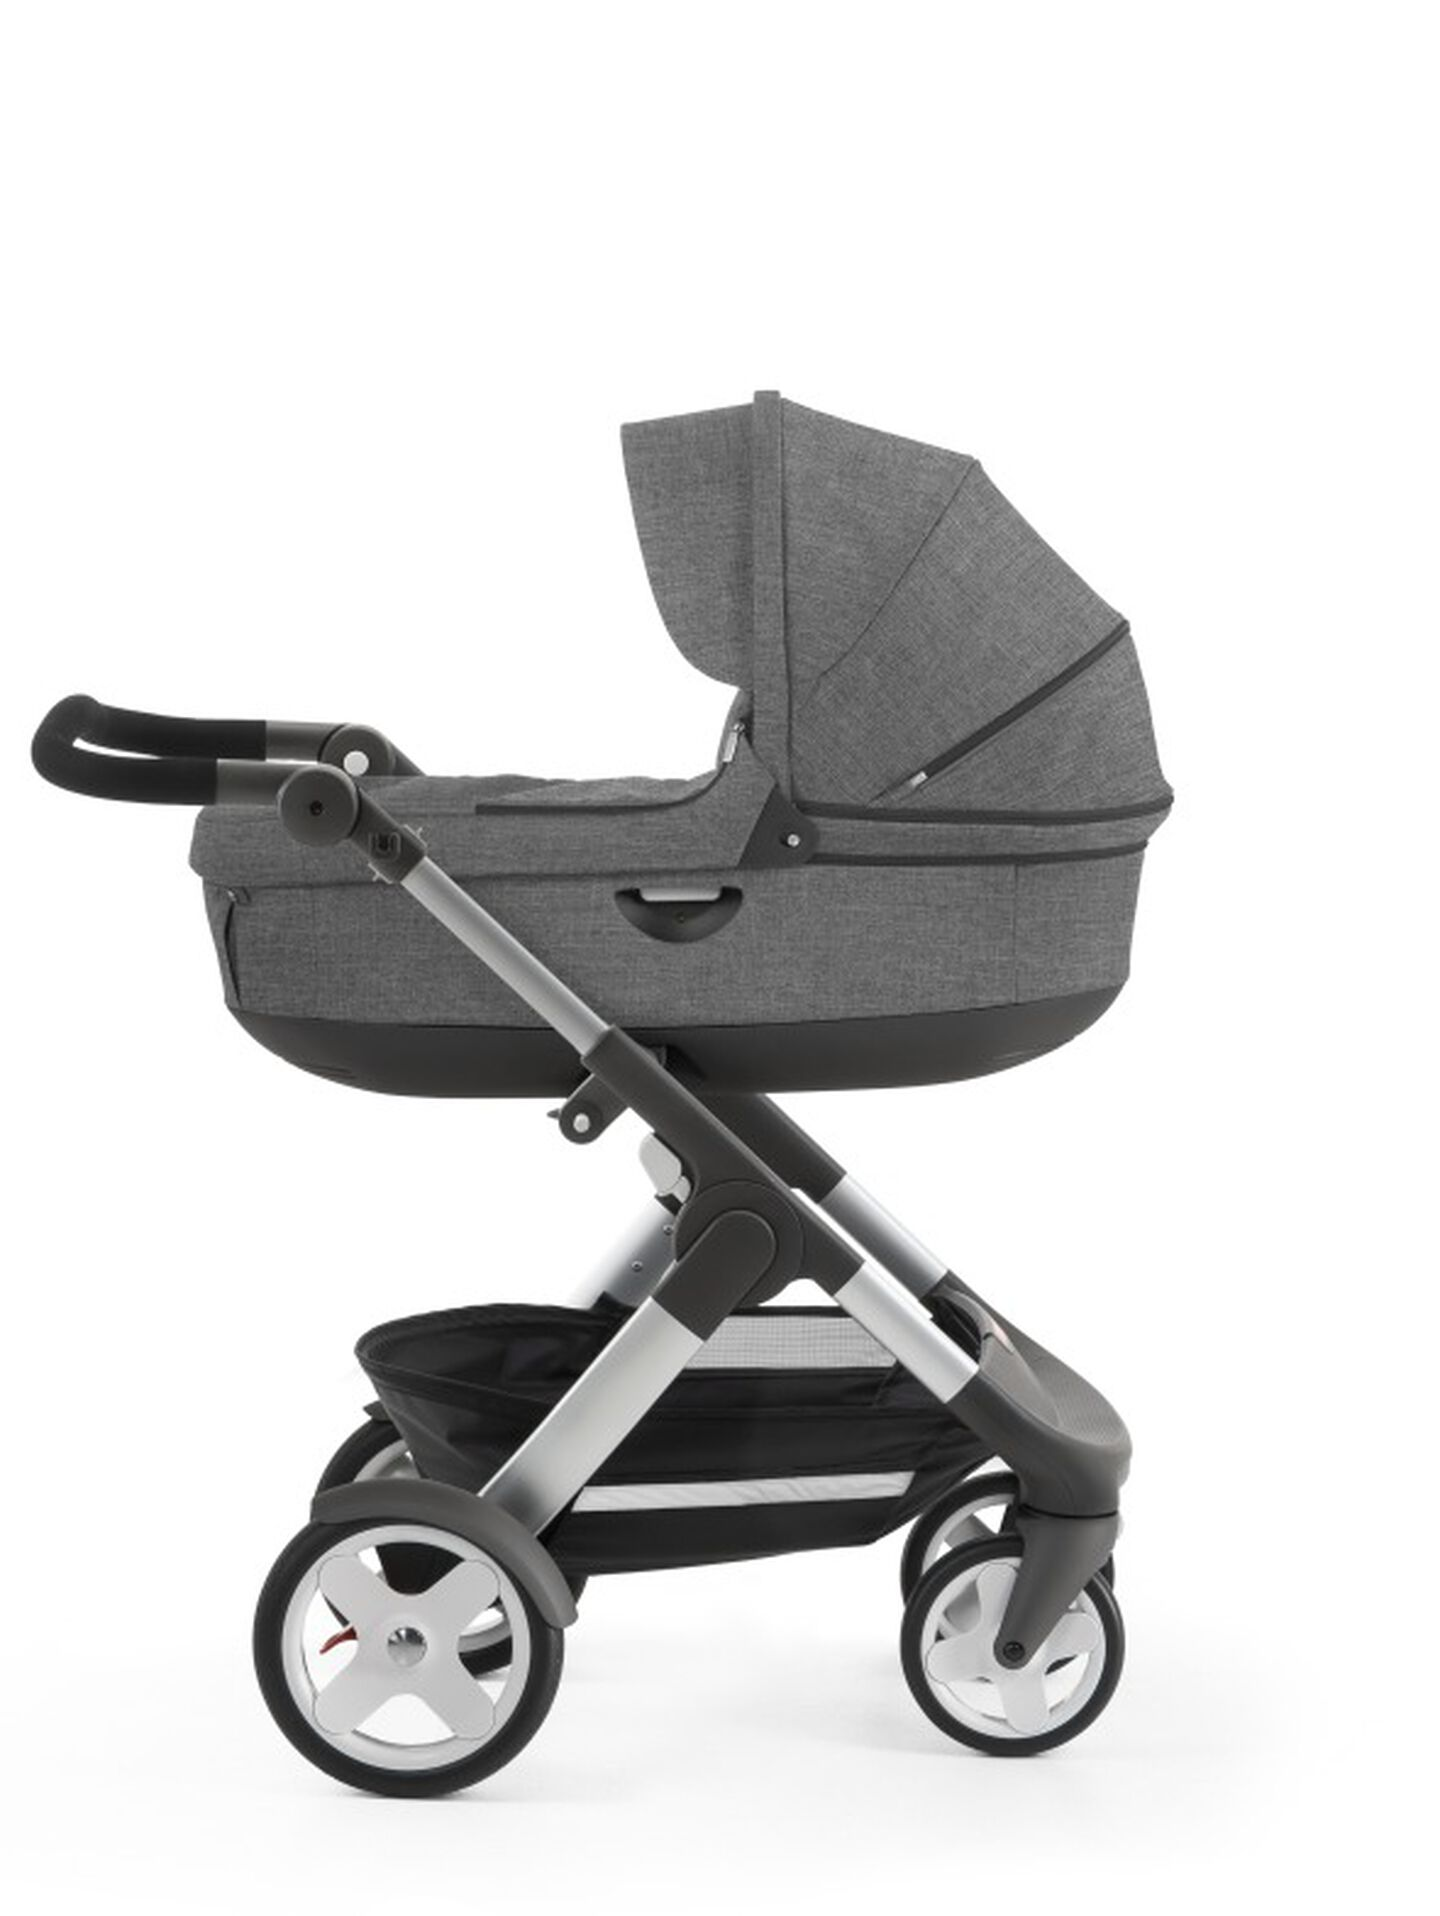 Stokke® Trailz™ with Stokke® Stroller Carry Cot, Black Melange. Classic Wheels. view 2